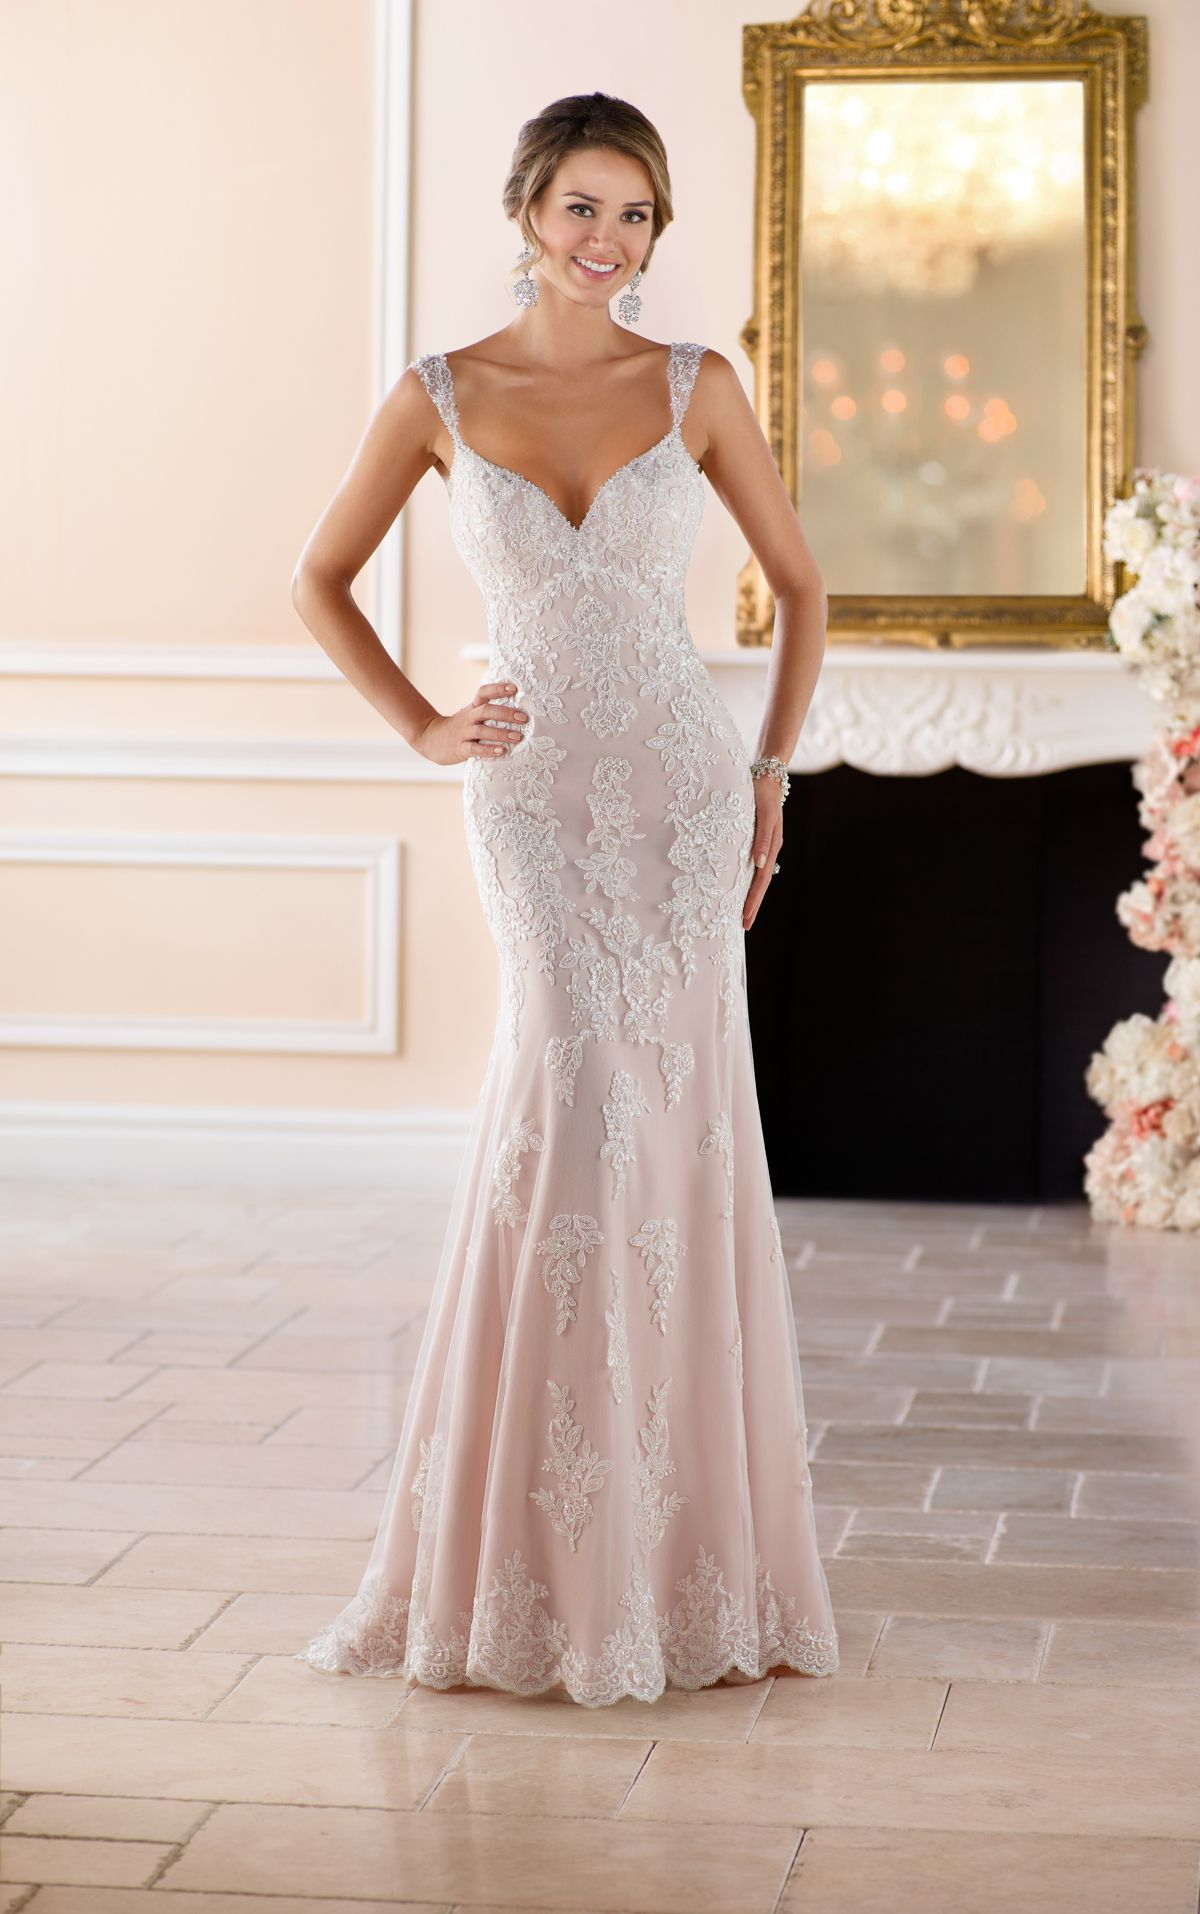 This Old Hollywood Glamour Wedding Dress With Long Train From Stella York Features Sheer Lace Cut